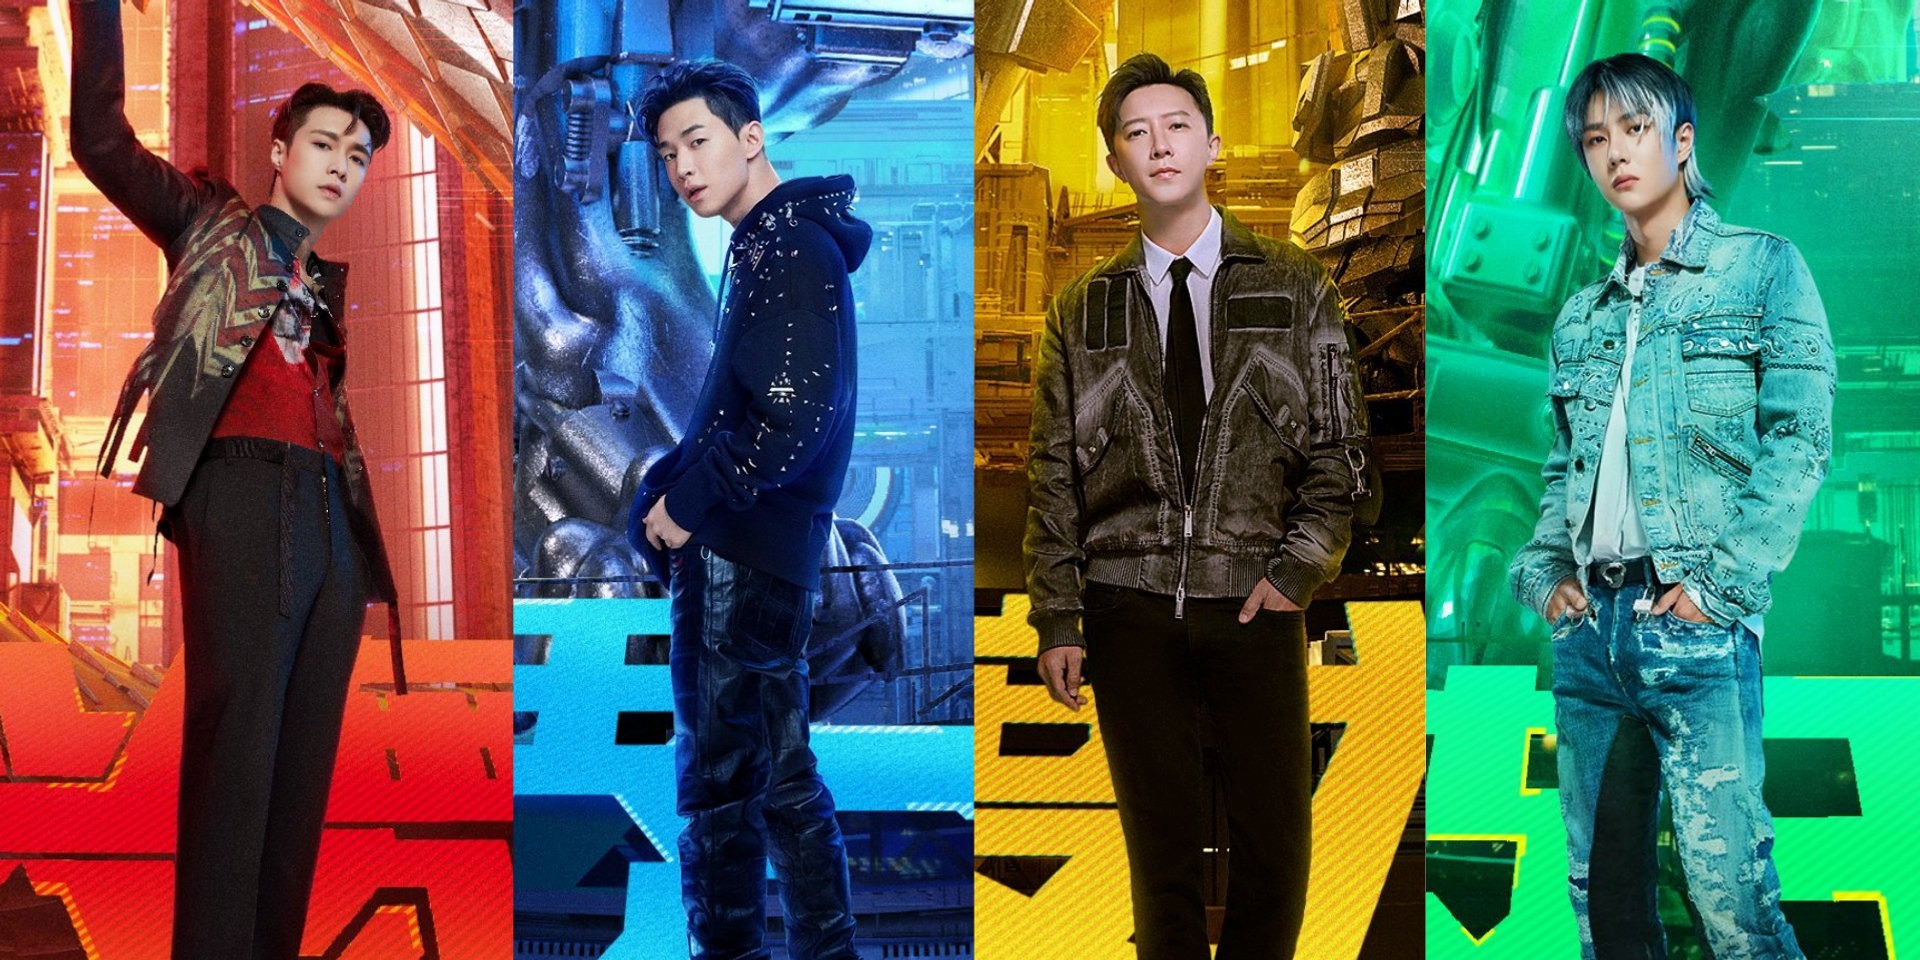 Wang Yibo, Han Geng, Henry Lau, and Lay Zhang reveal what to expect for Street Dance of China Season 4 - watch